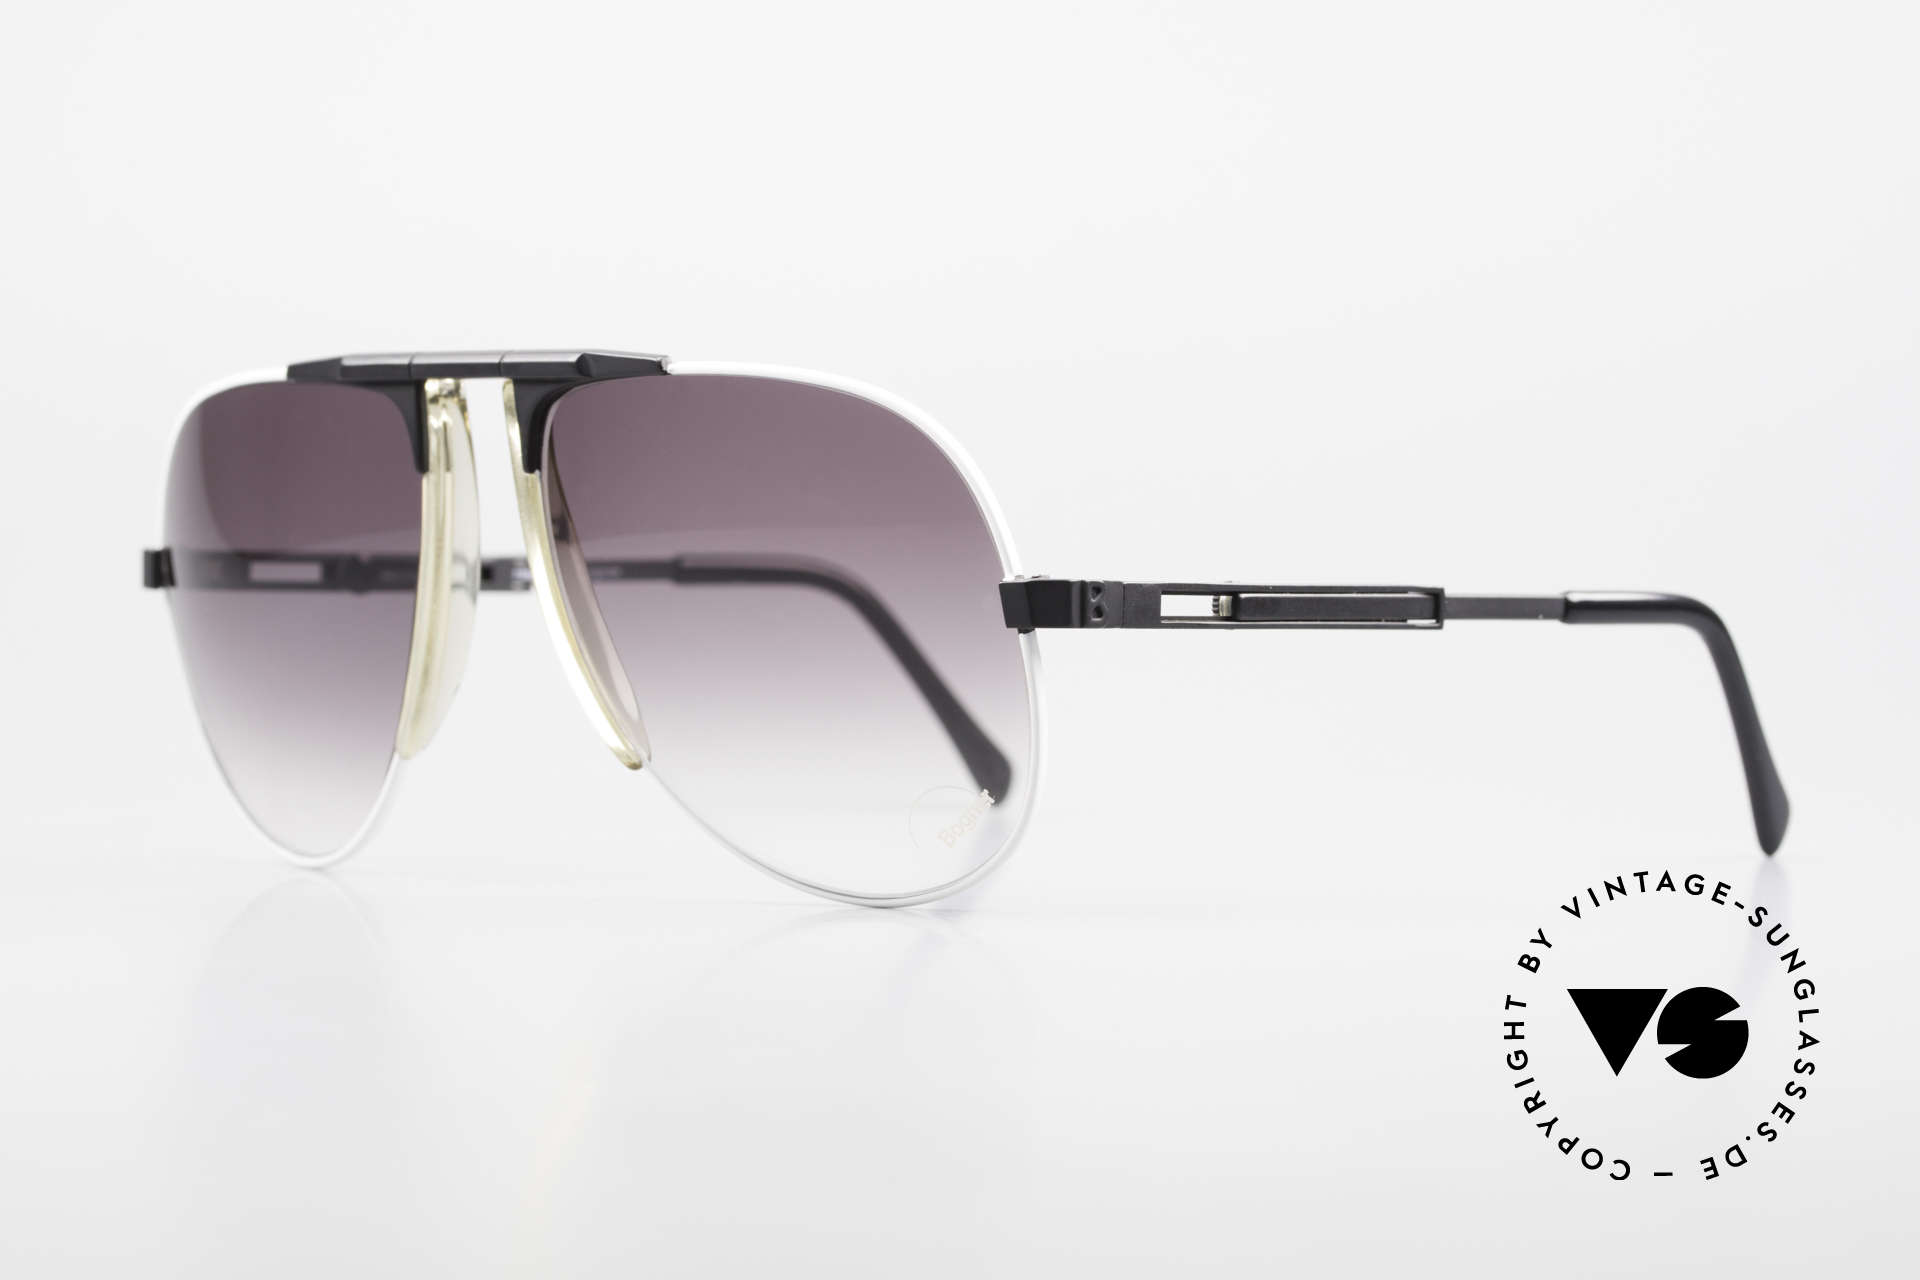 Willy Bogner 7011 Men 80's Sunglasses Adjustable, finest quality (100% UV) from Germany from app. 1982, Made for Men